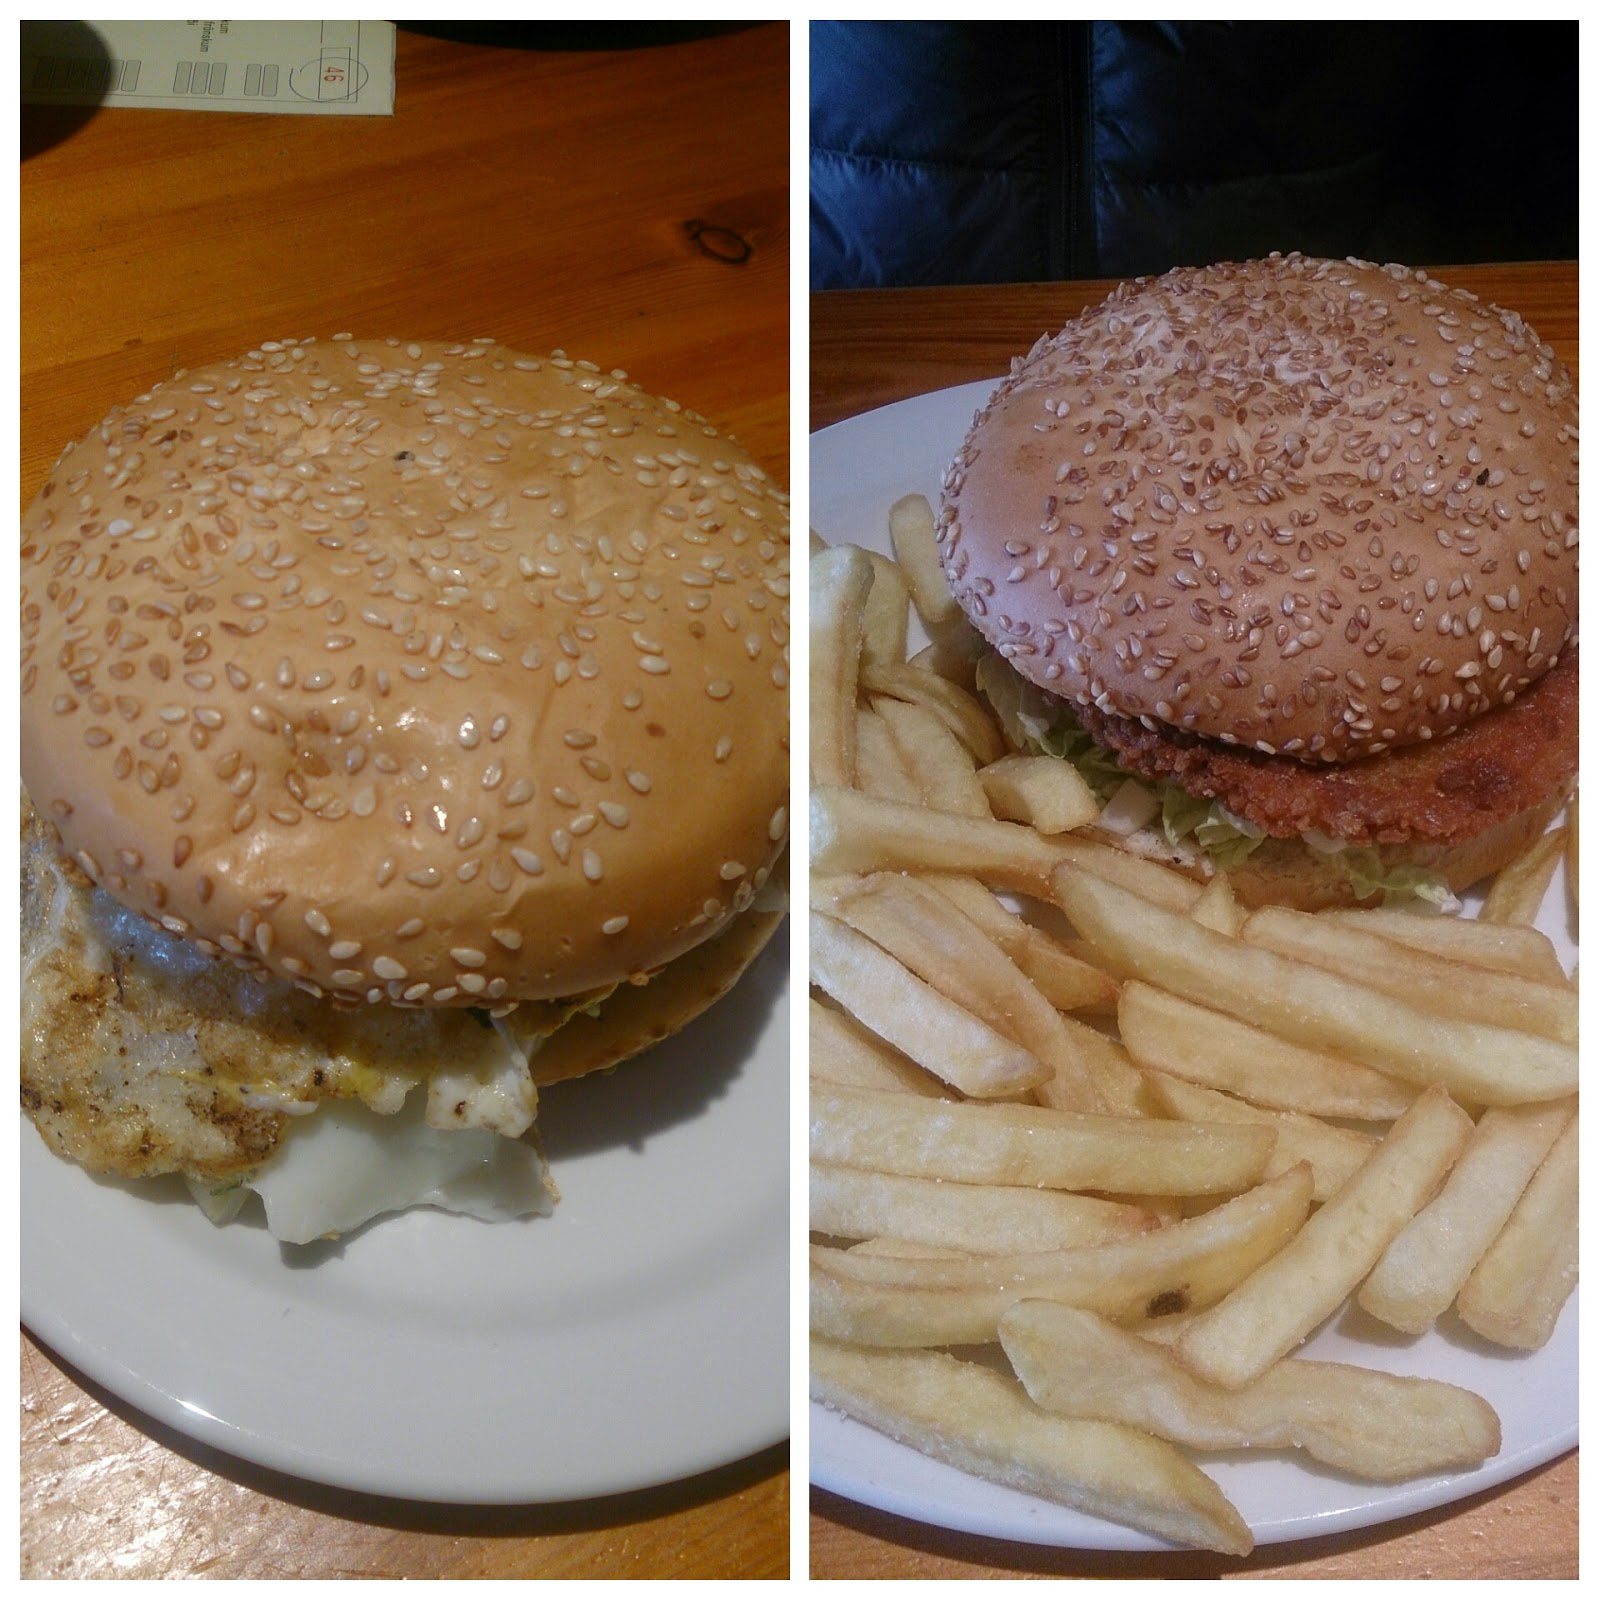 Vegetarian and Egg Burger...loved hot, fried food in the cold weather